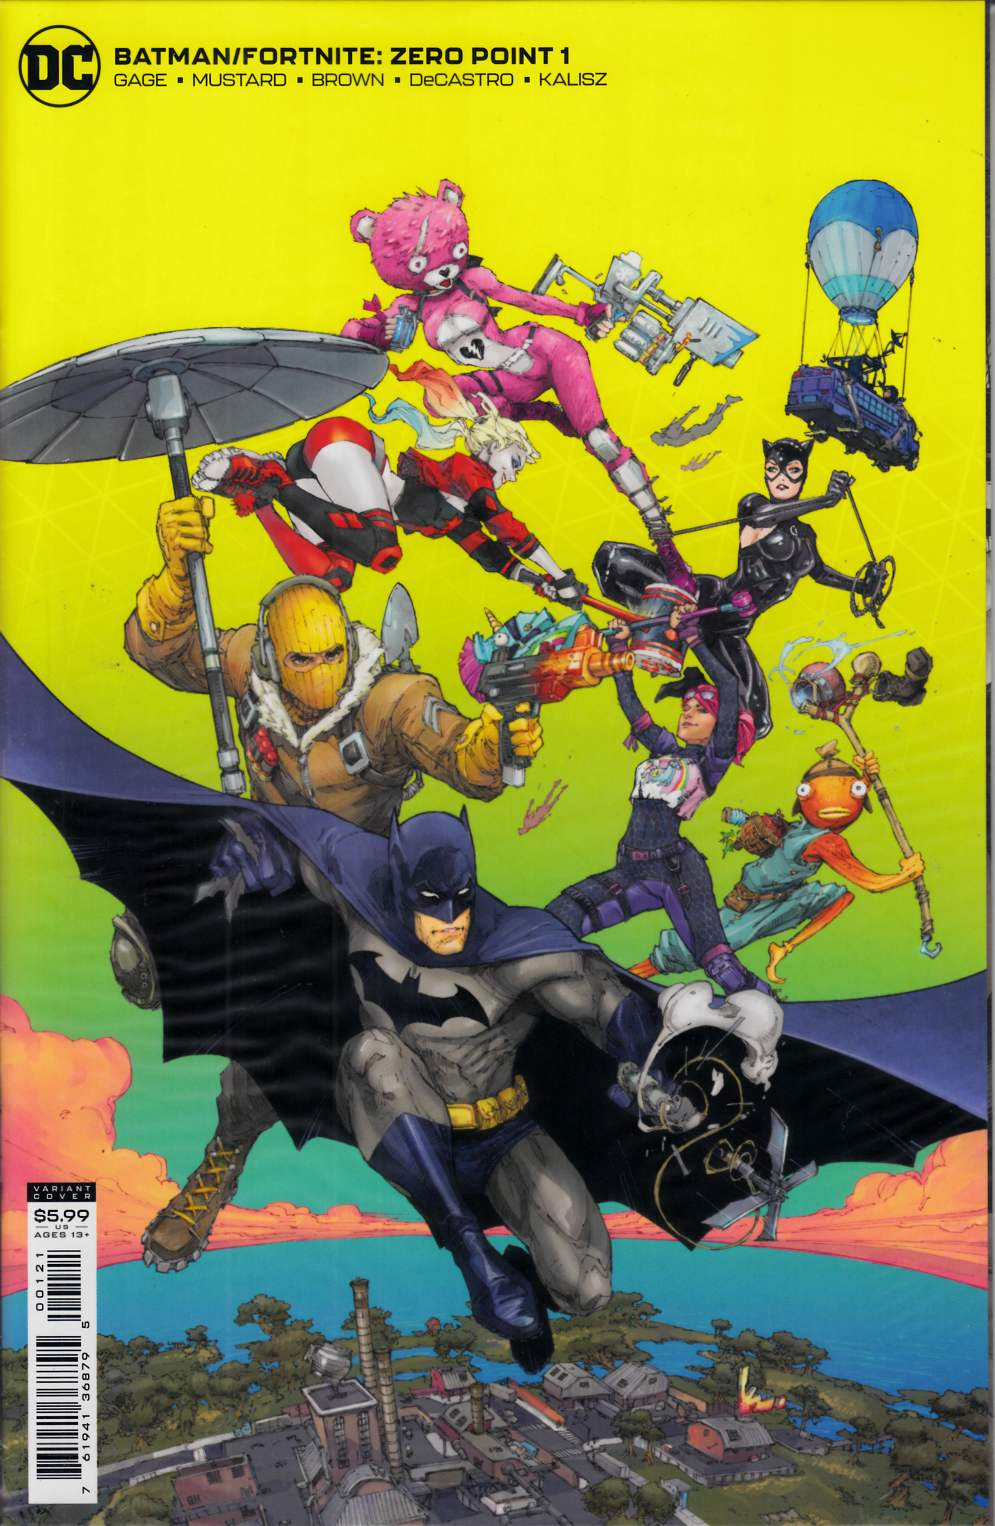 Batman Fortnite Zero Point #1 Rocafort Variant Cover Near Mint (9.4) [DC Comic] LARGE